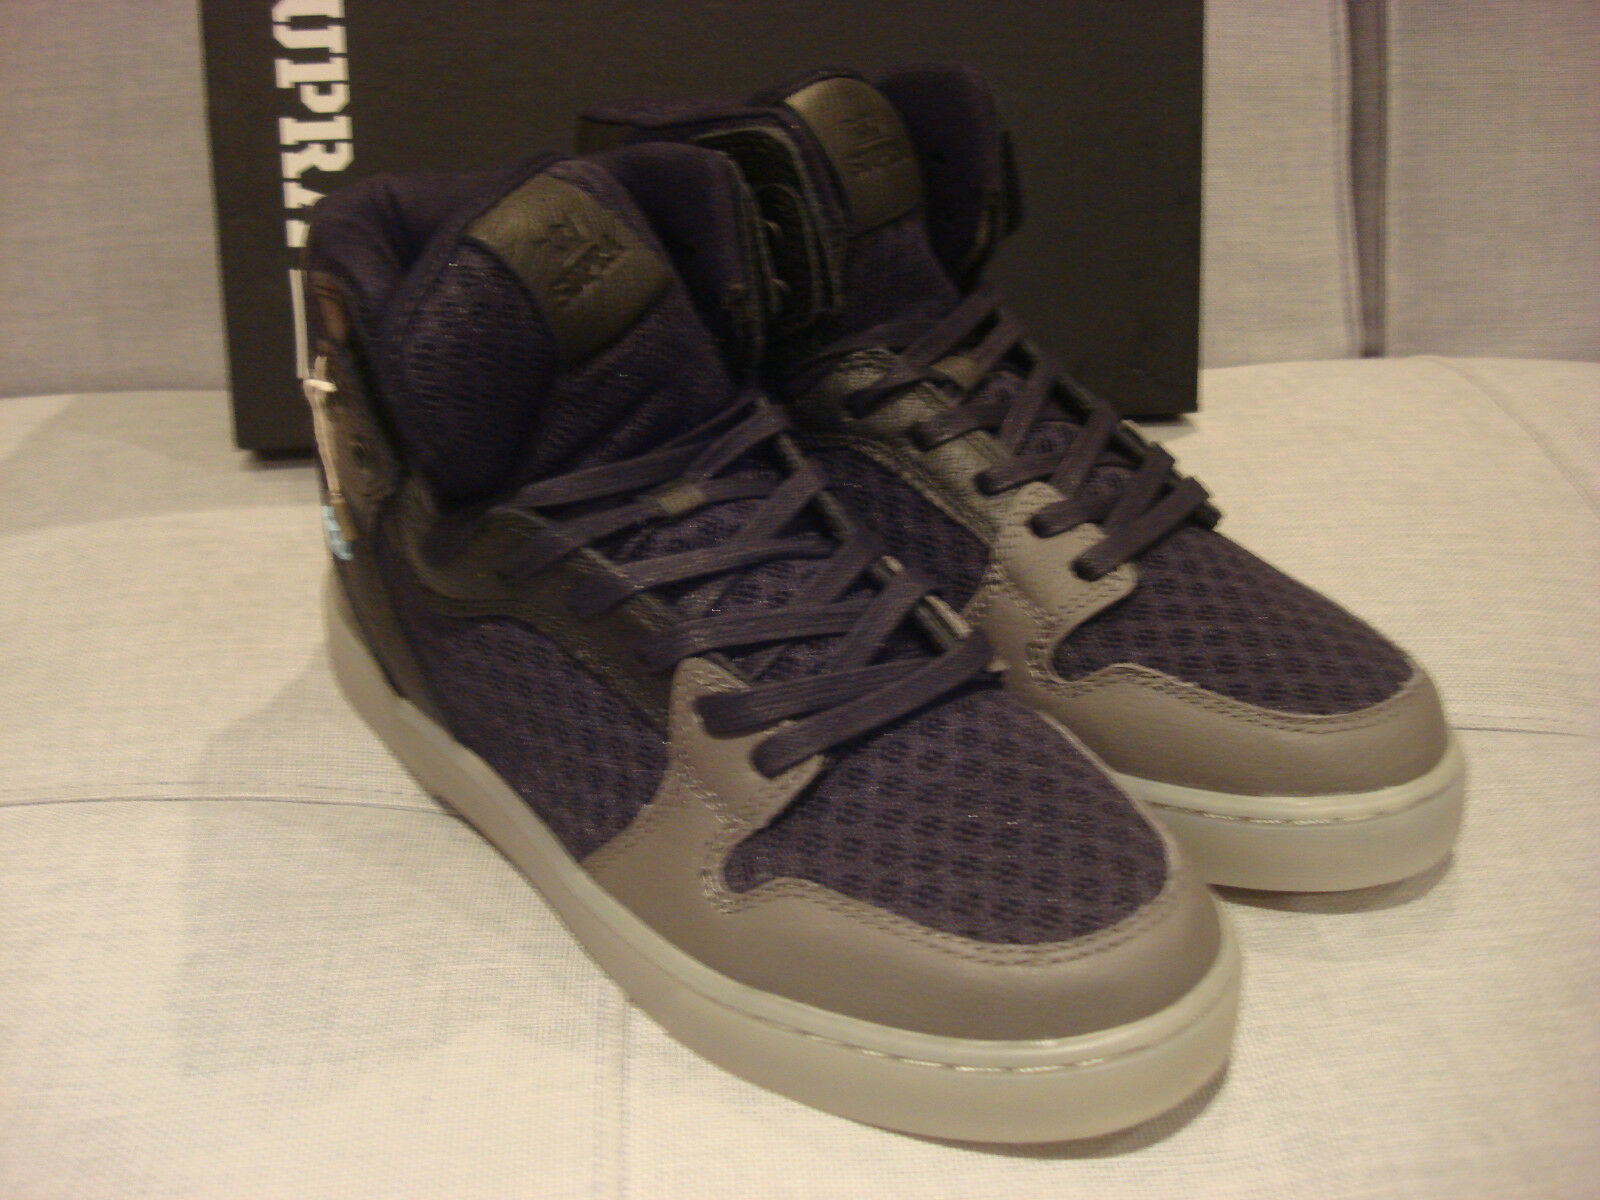 SPECTRE by SUPRA MEN'S VAIDER LX BLACK GREY CLEAR S68004 SIZE 10 SHOES - NEW